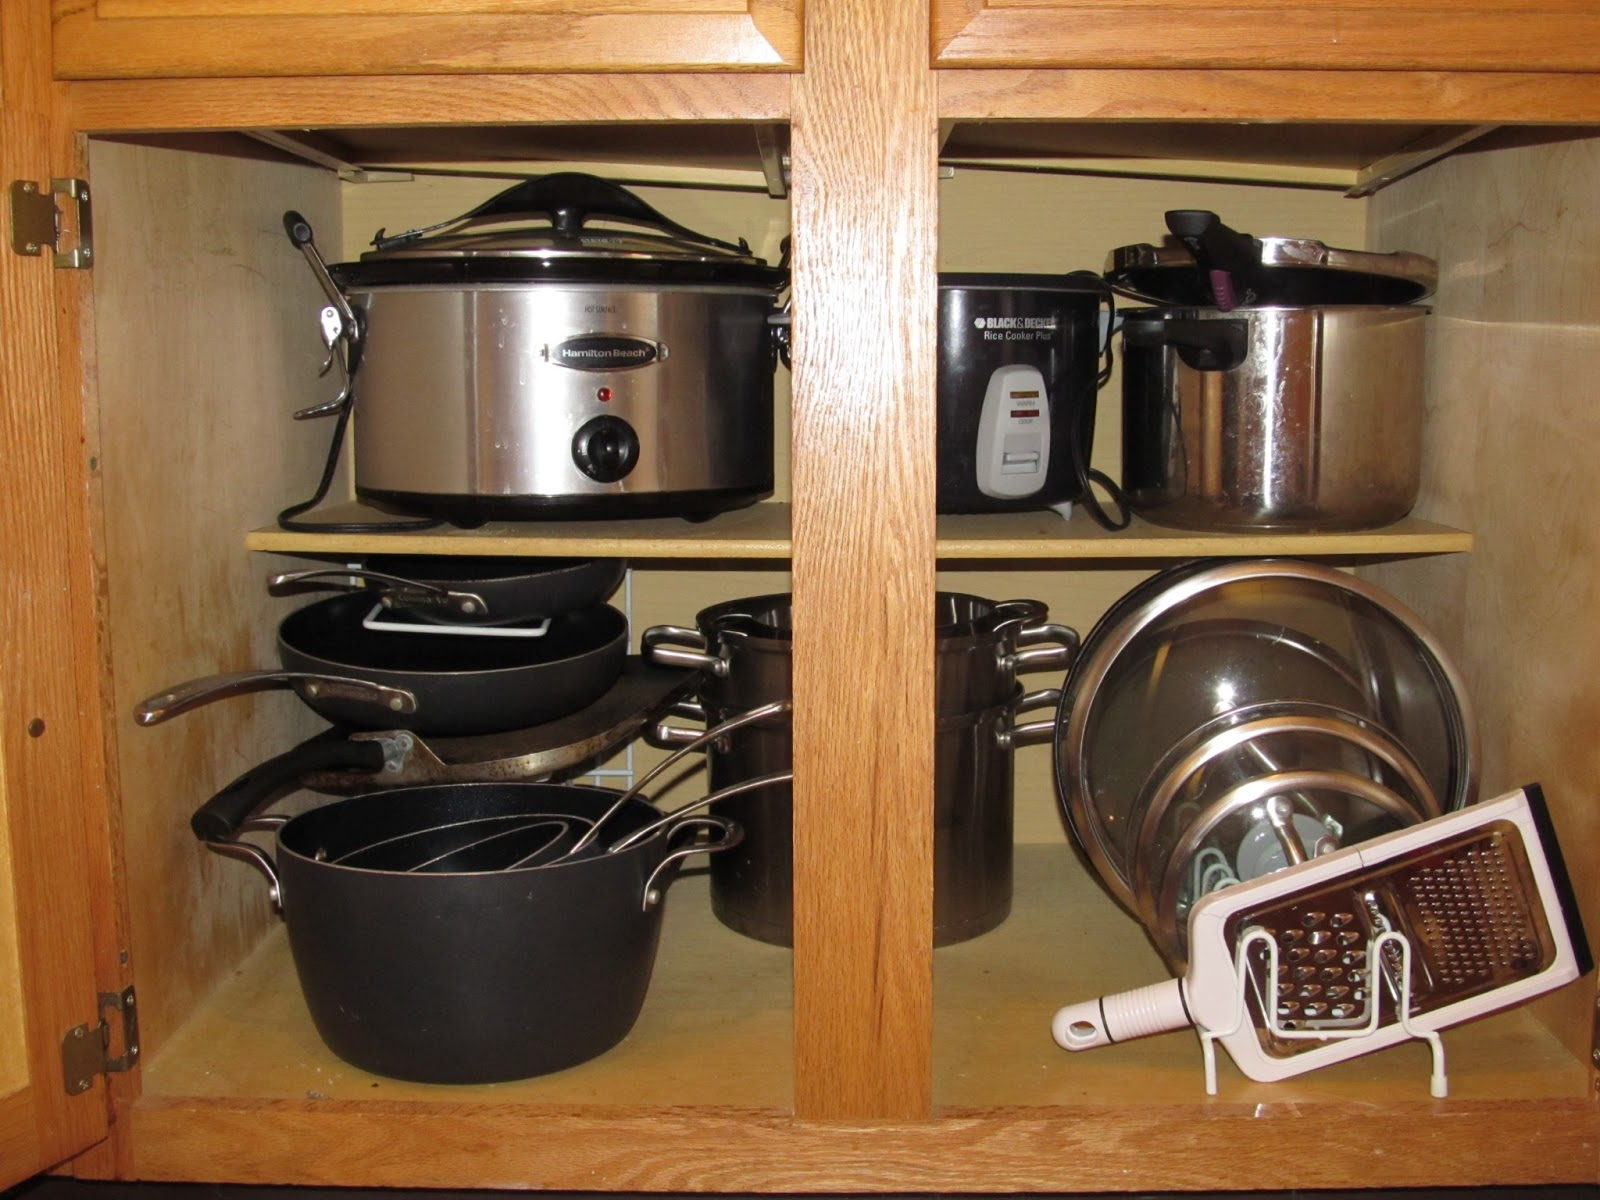 Pots And Pans Storage Ideas To Take Note Of: Quick Kitchen Organization Tips